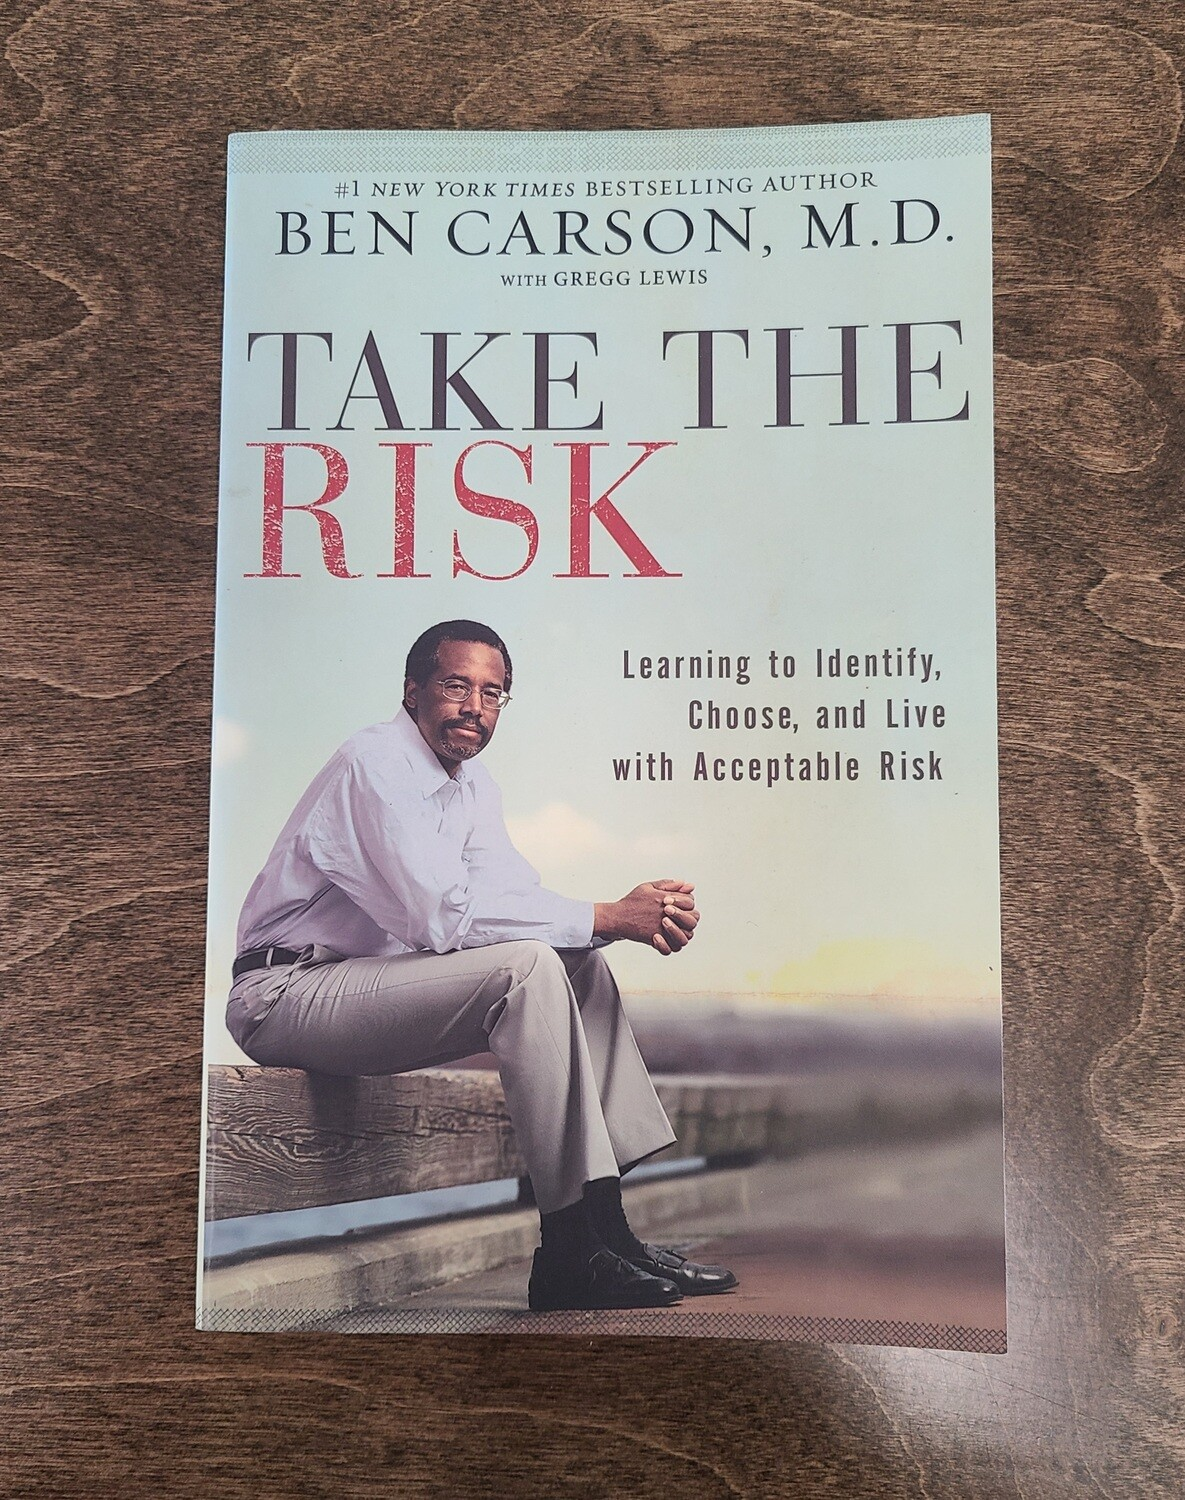 Take the Risk by Ben Carson, M.D. with Gregg Lewis